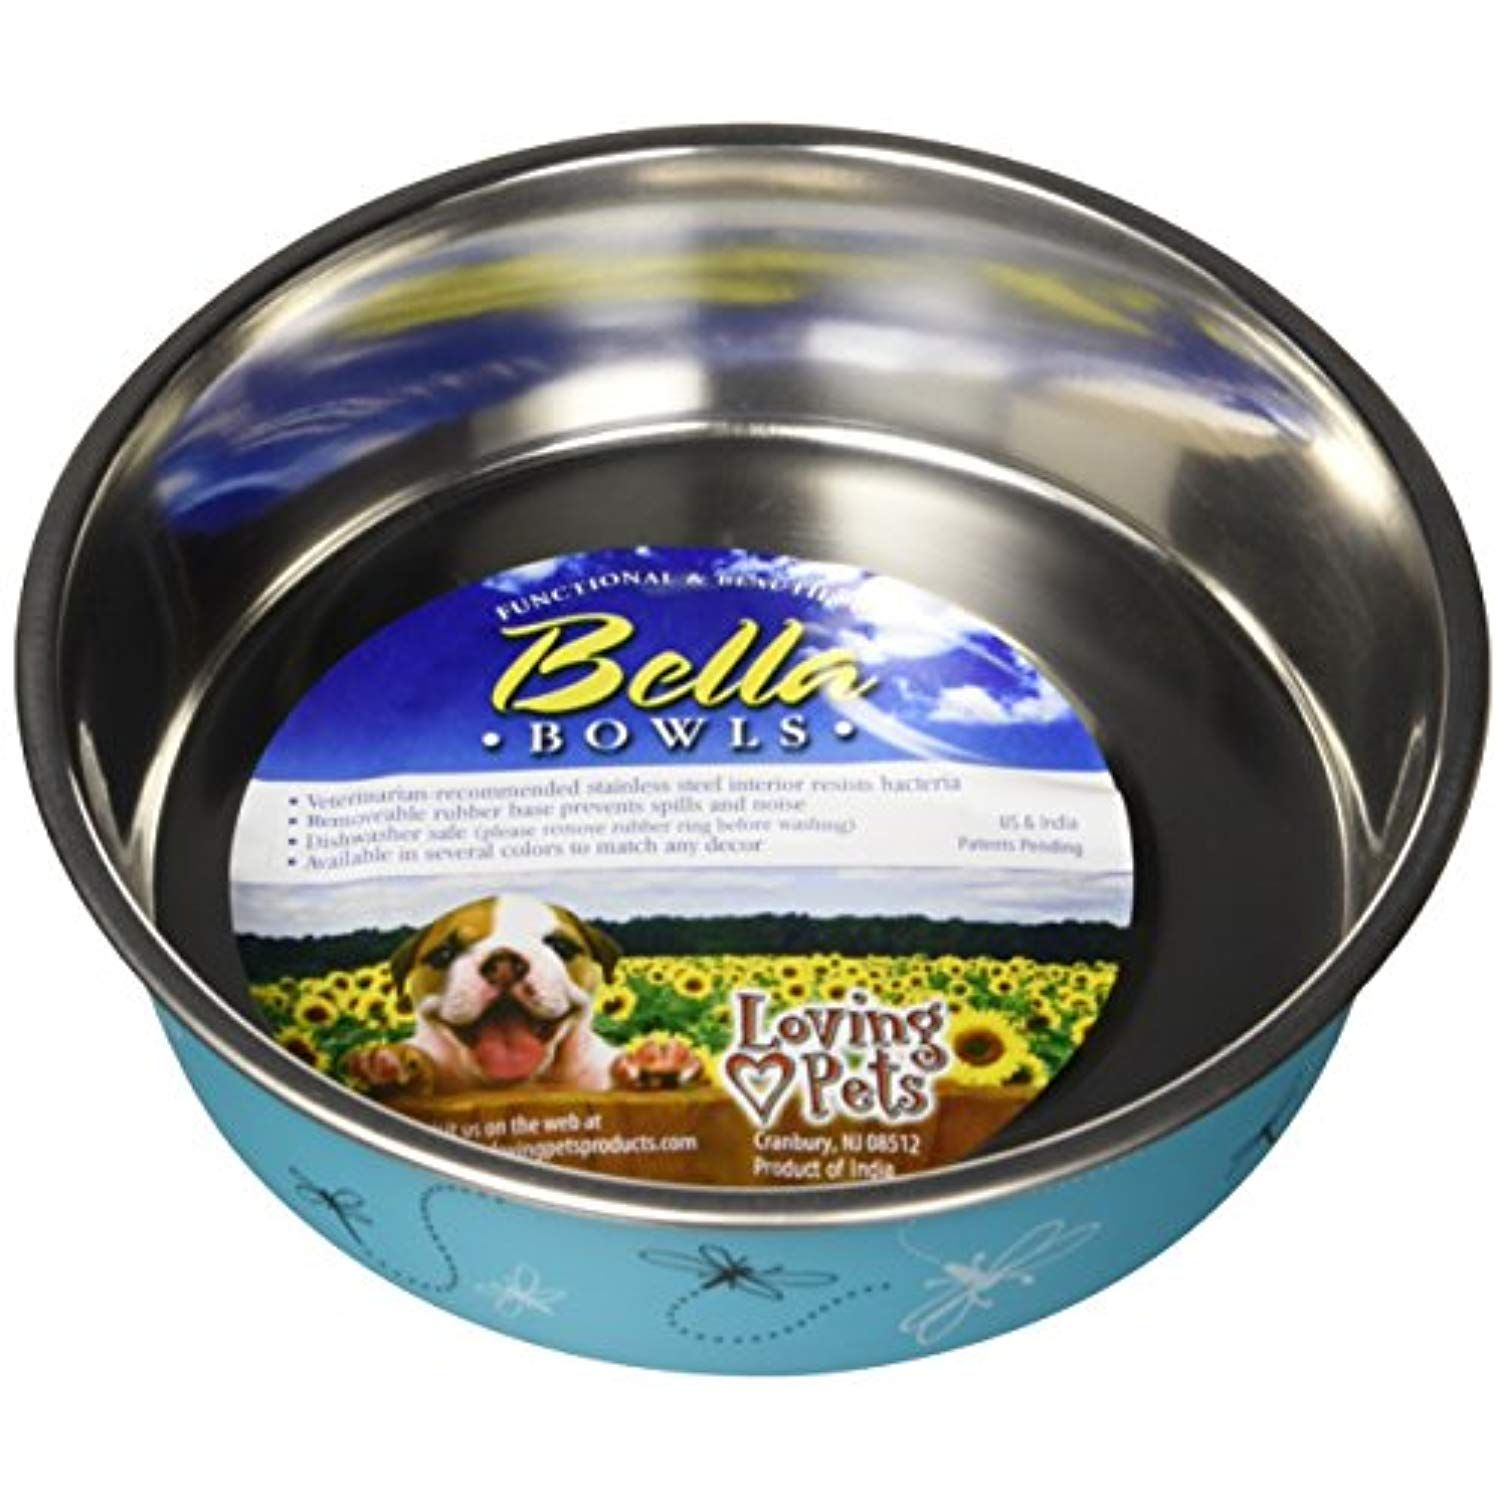 Loving Pets Bella Bowl Designer And Expressions Dog Bowl Medium